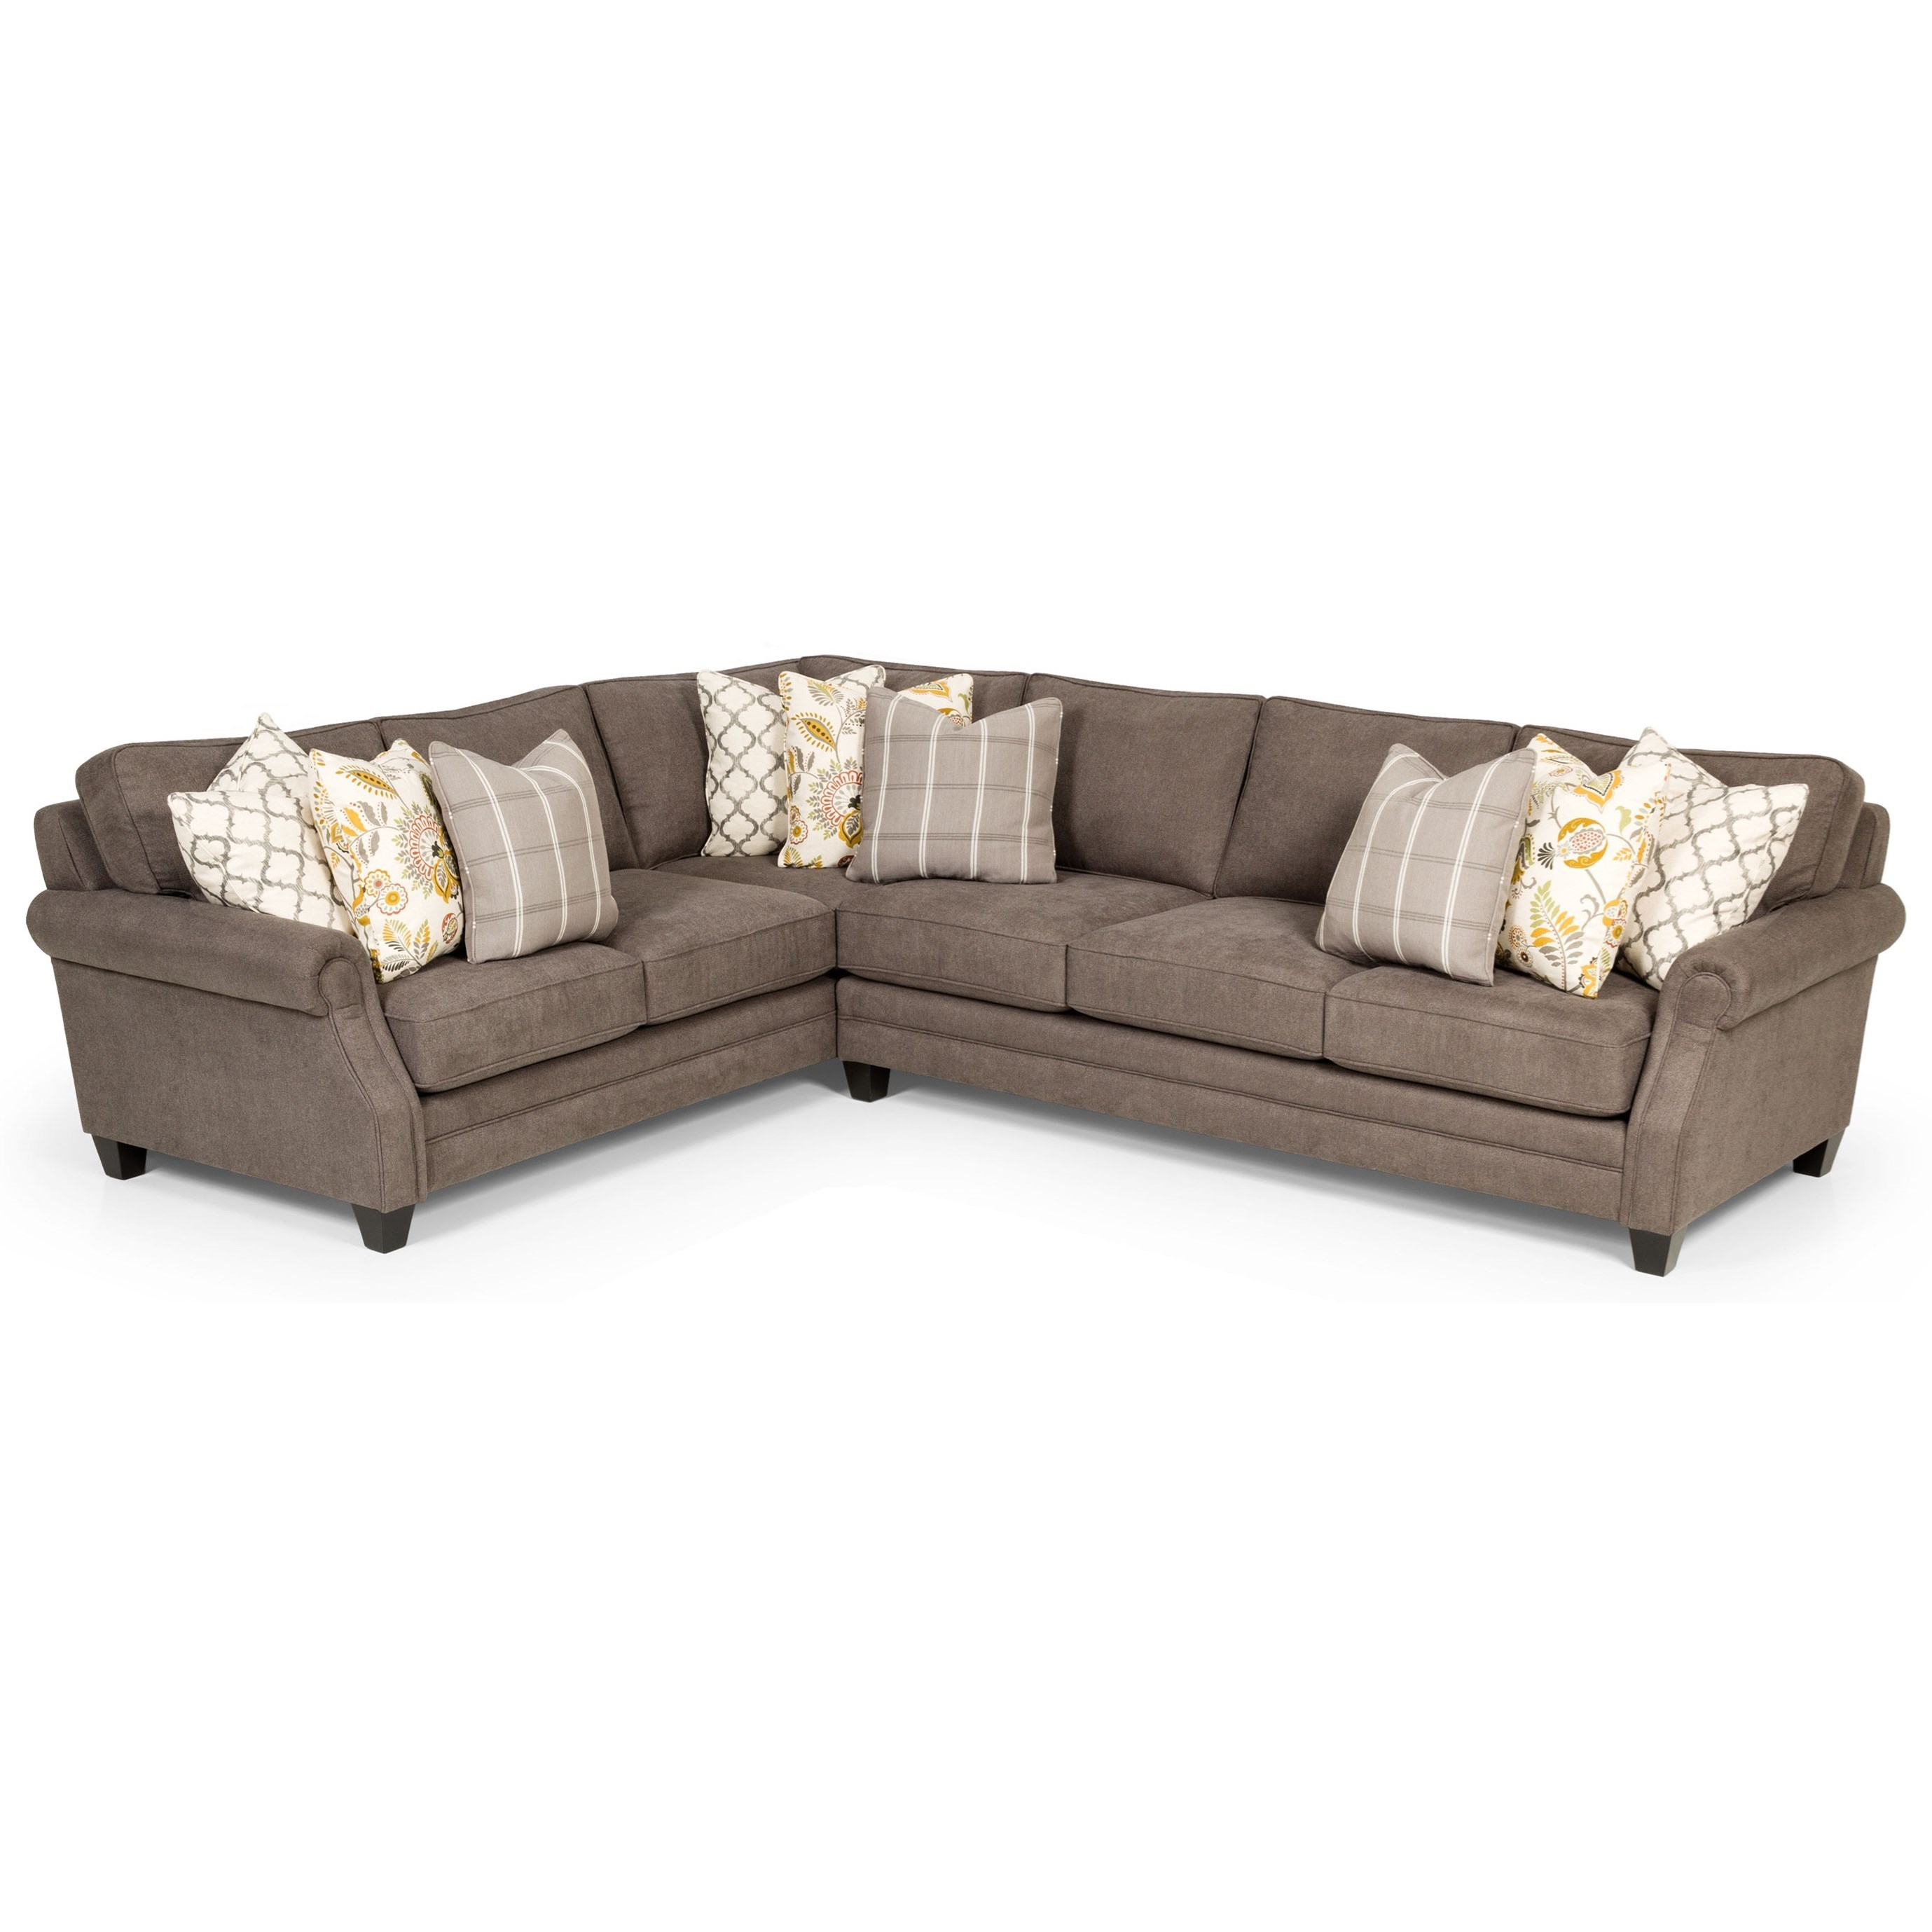 399 Sectional by Sunset Home at Sadler's Home Furnishings